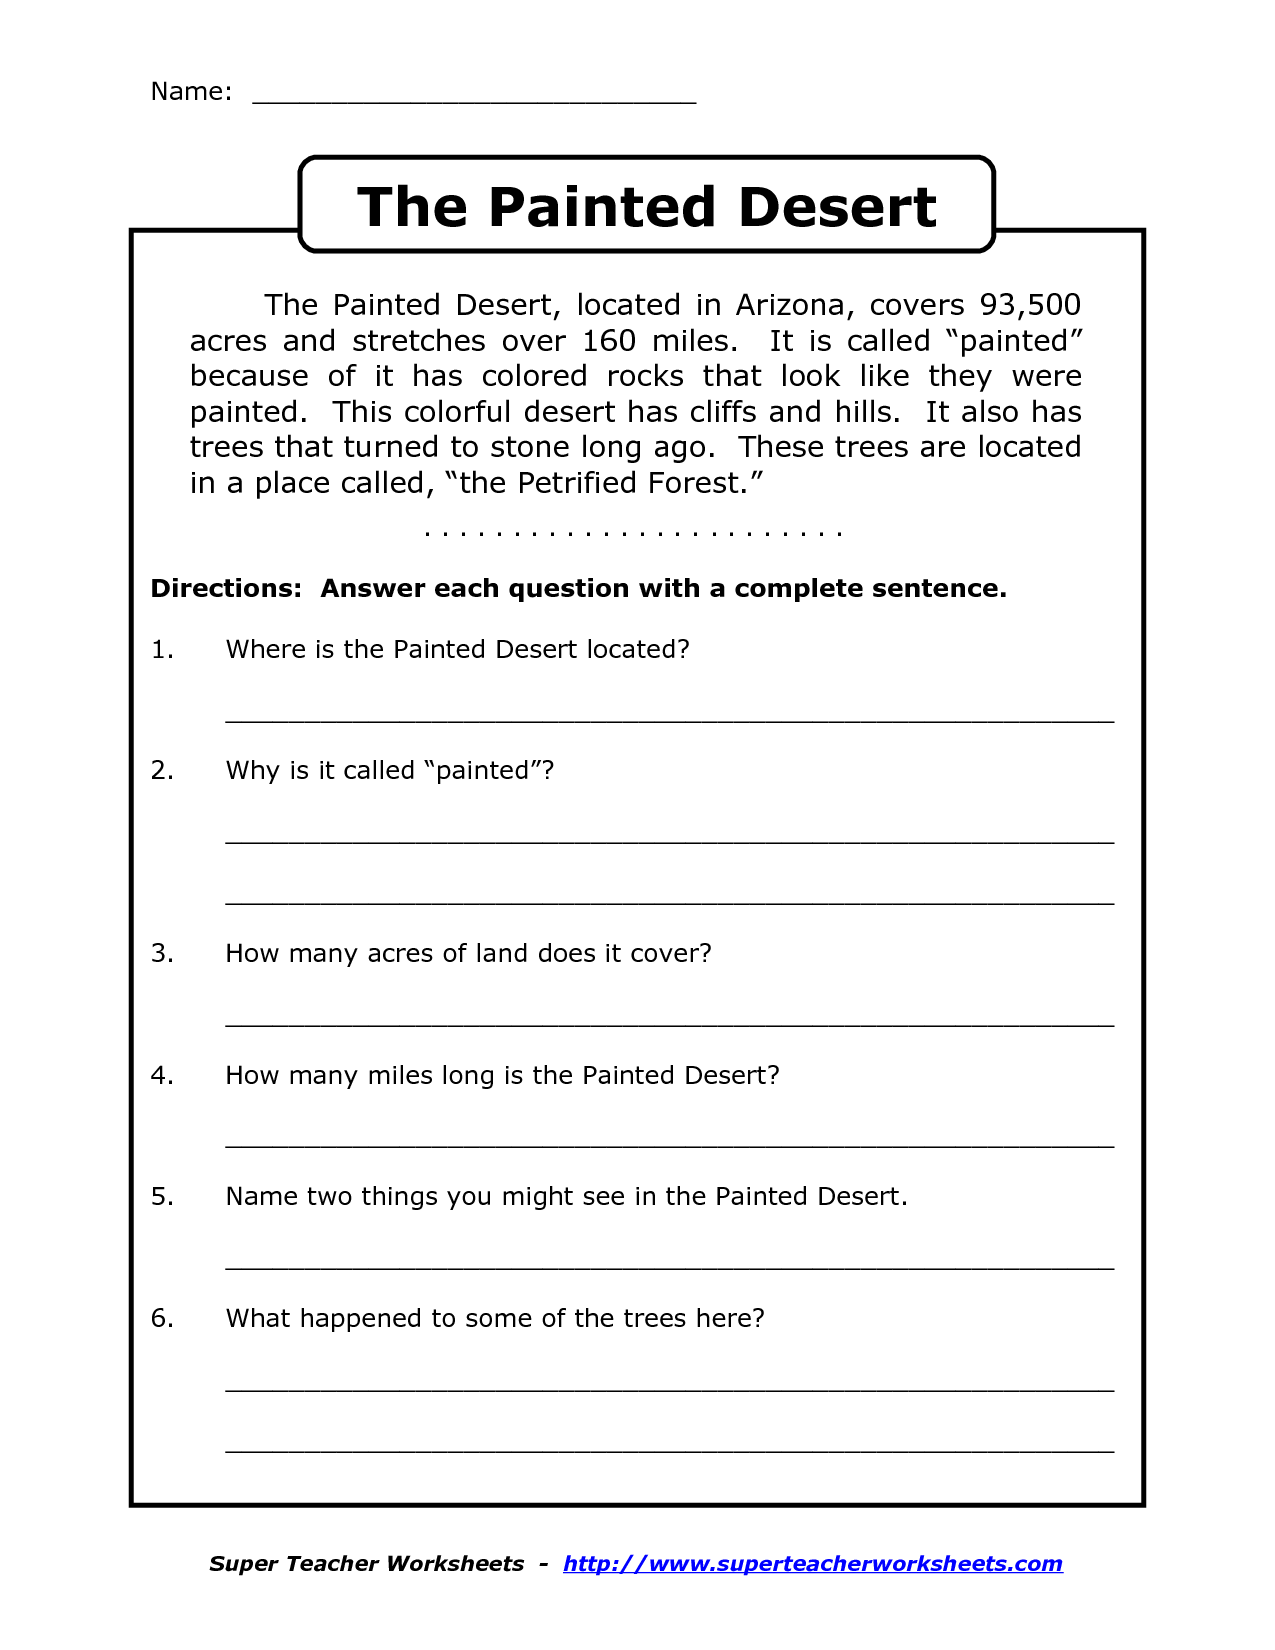 Worksheet Grade 2 Comprehension Worksheets English free comprehension worksheets year 2 worksheet printable reading for grade 5 k5